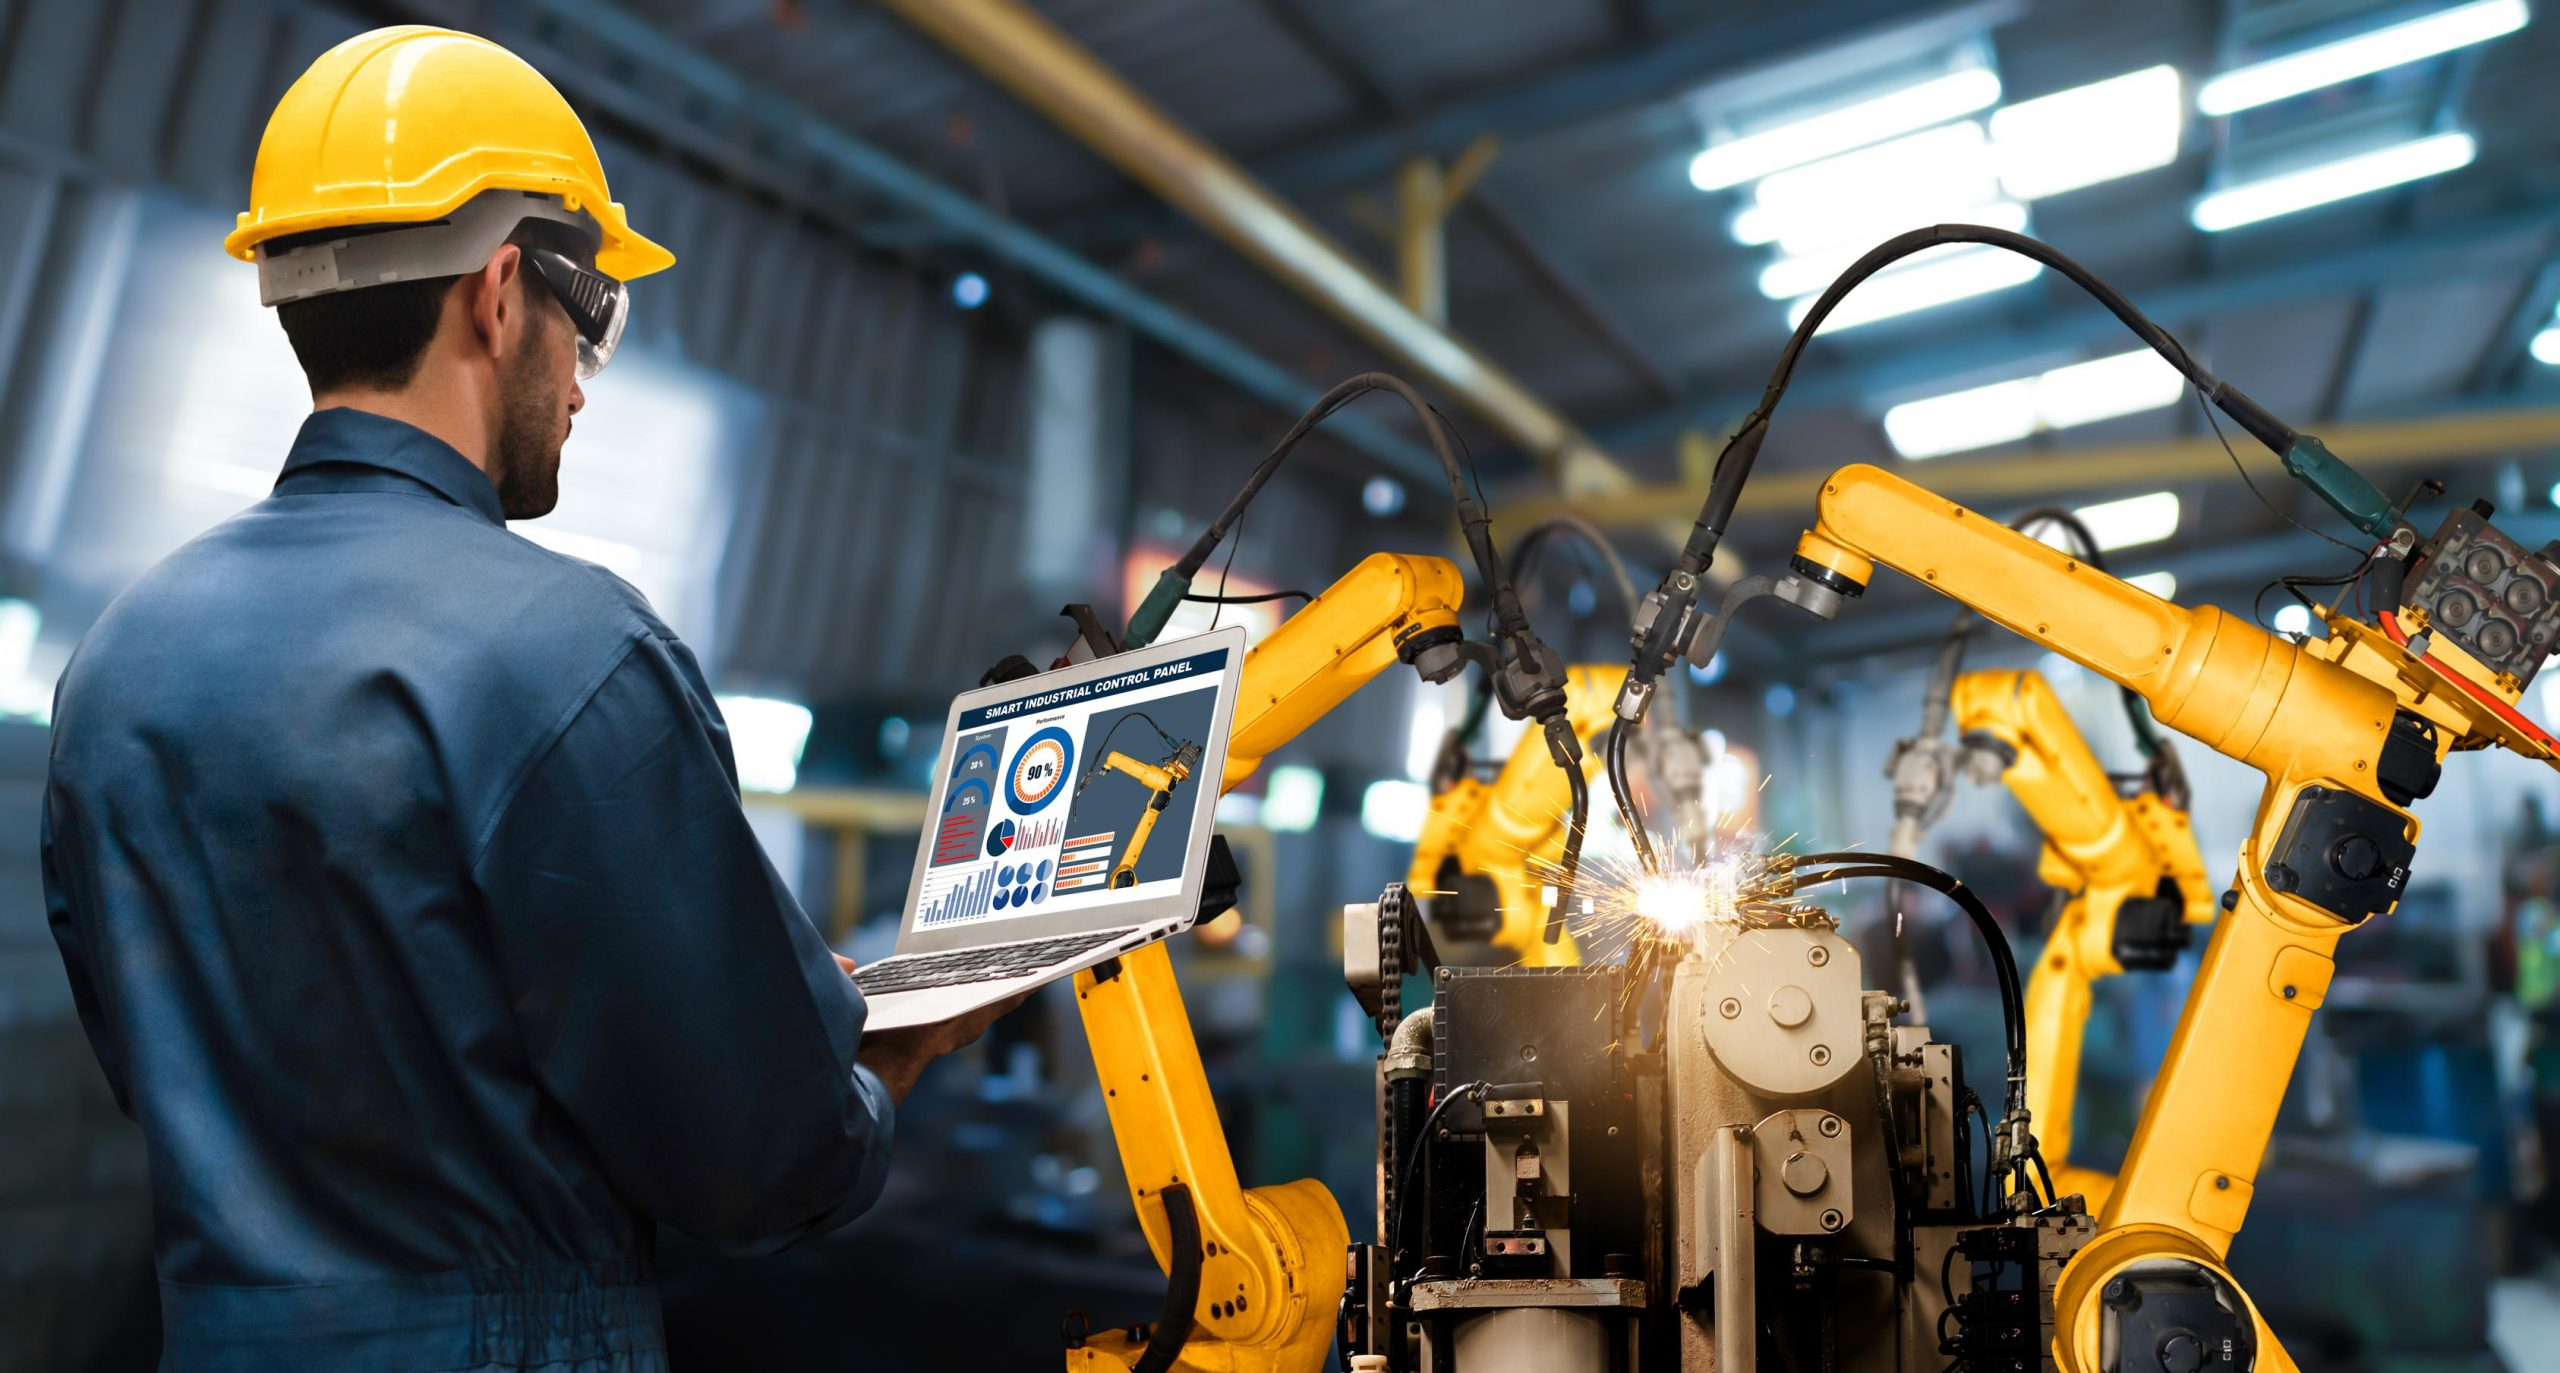 6 ways ERP can help manufacturing processes post-COVID